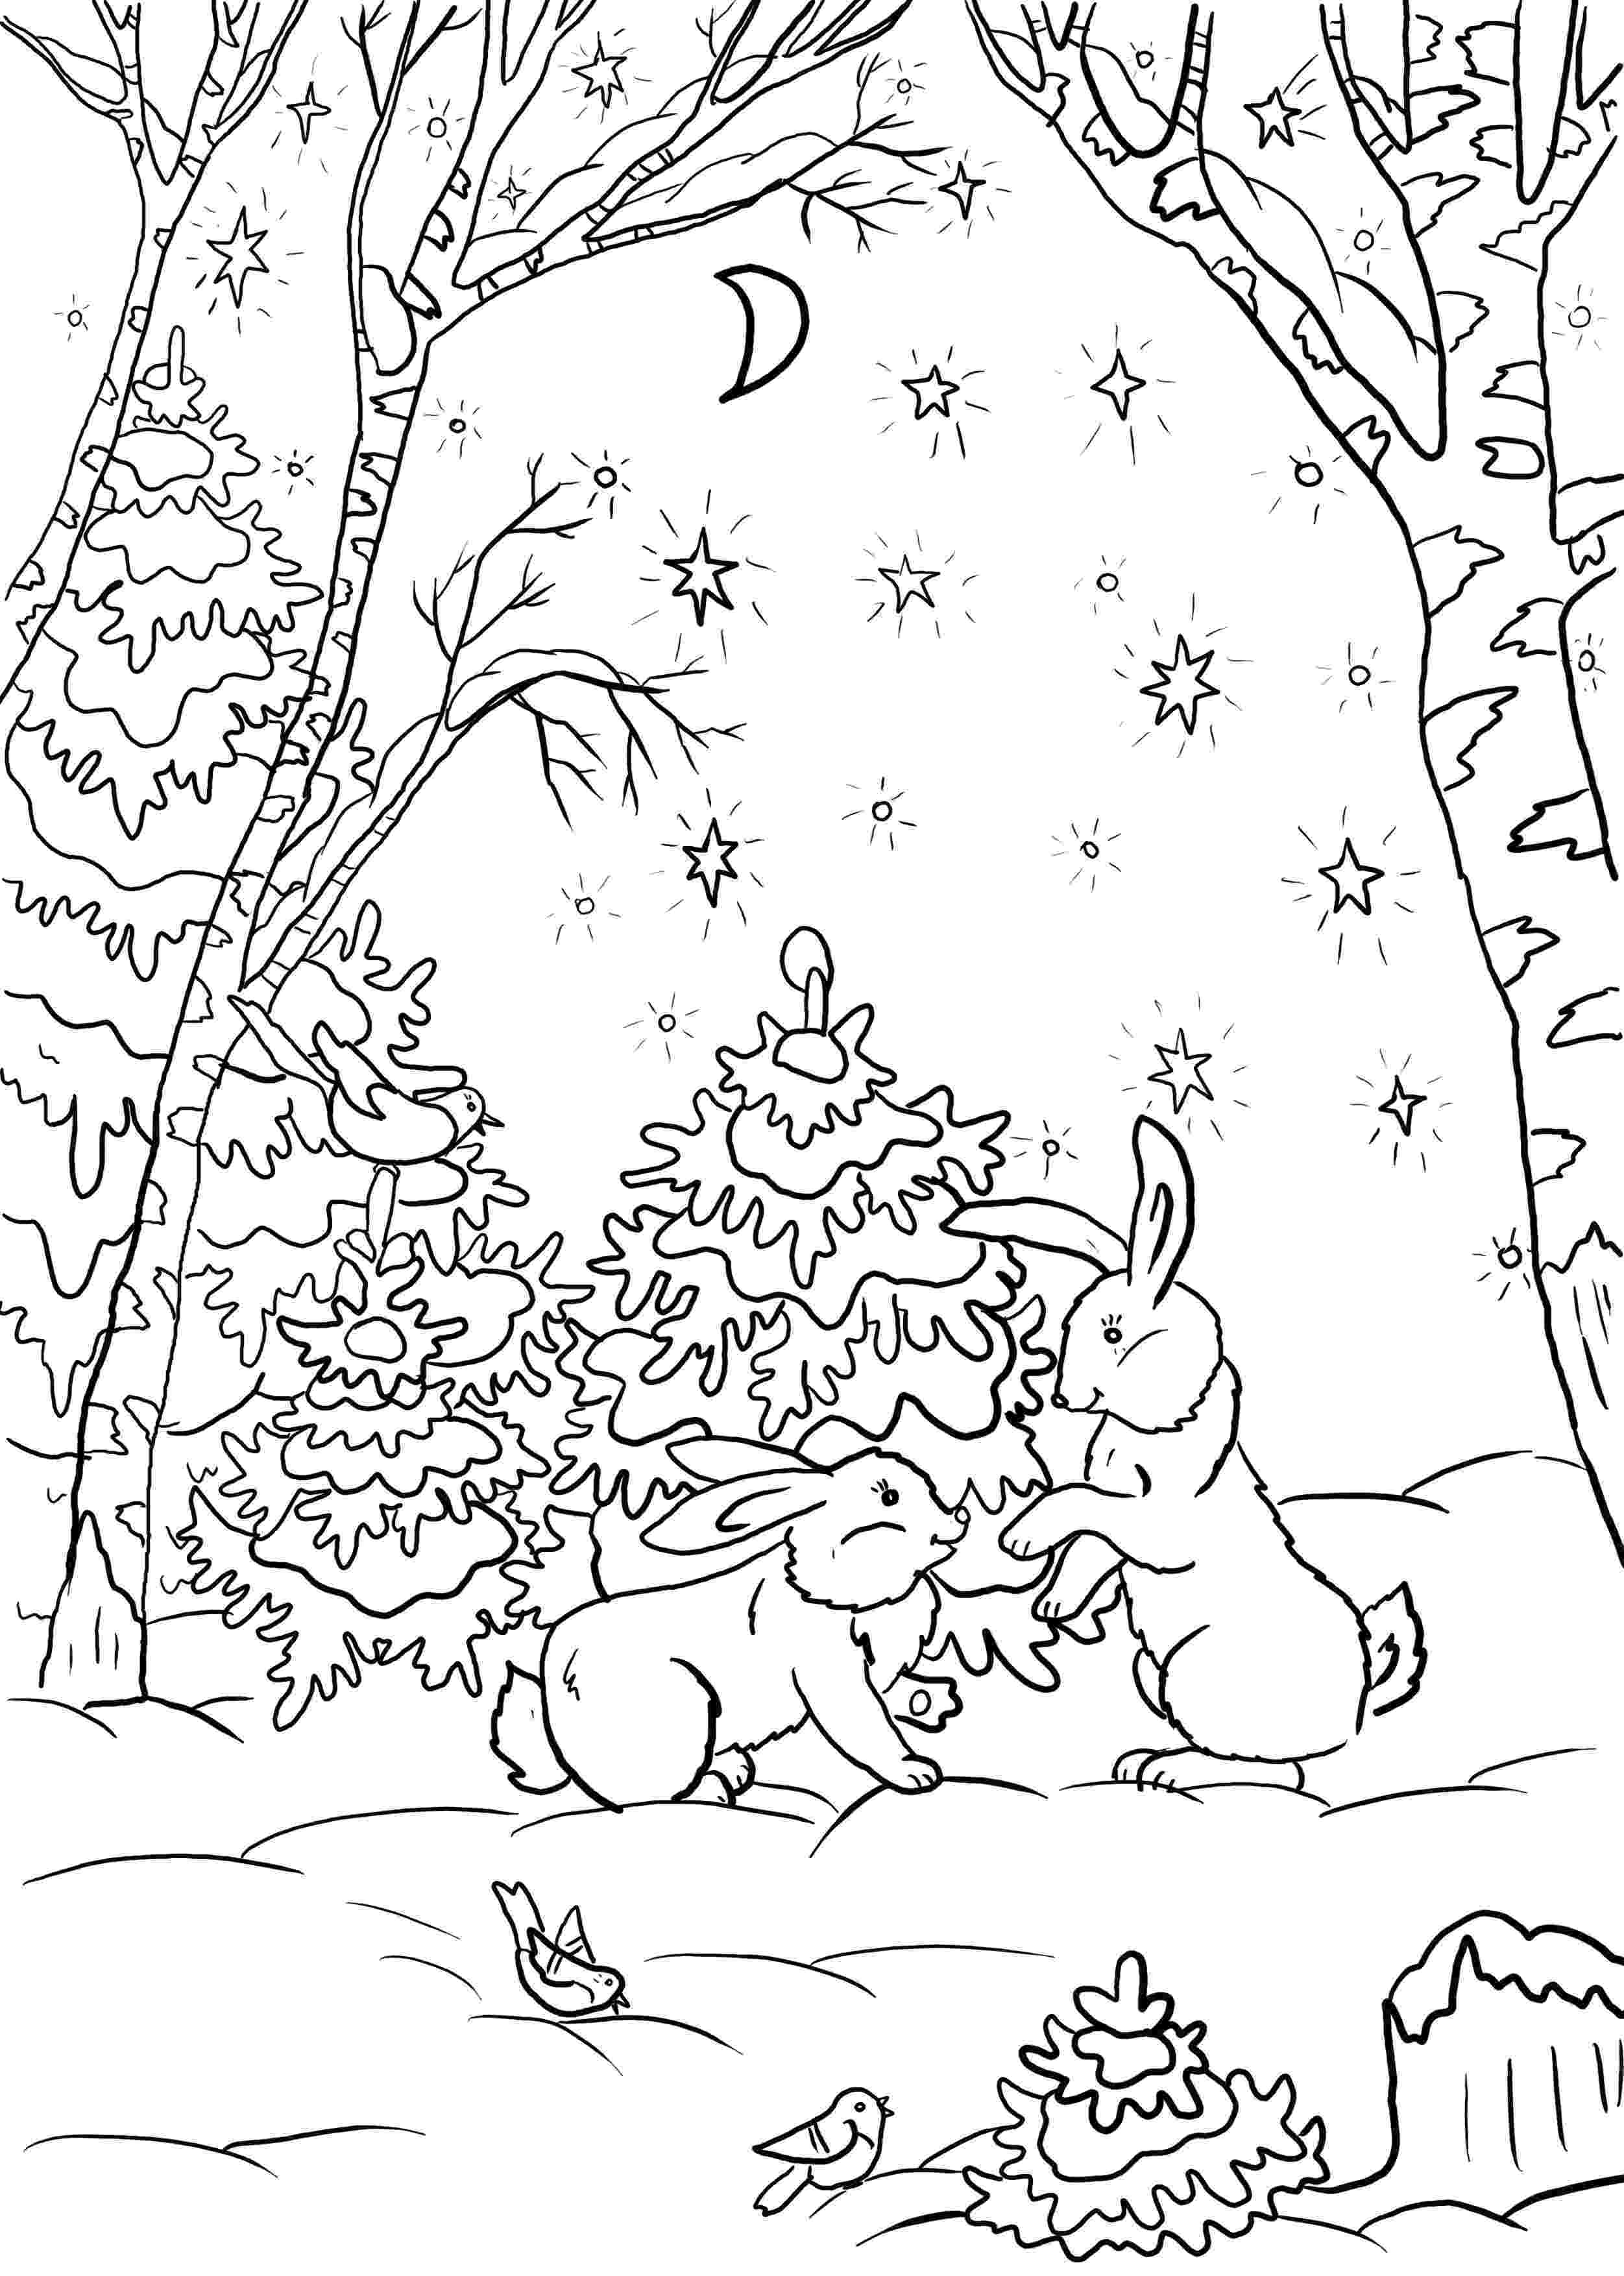 forest coloring sheets surlalune fairy tales blog art thursday enchanted forest coloring sheets forest